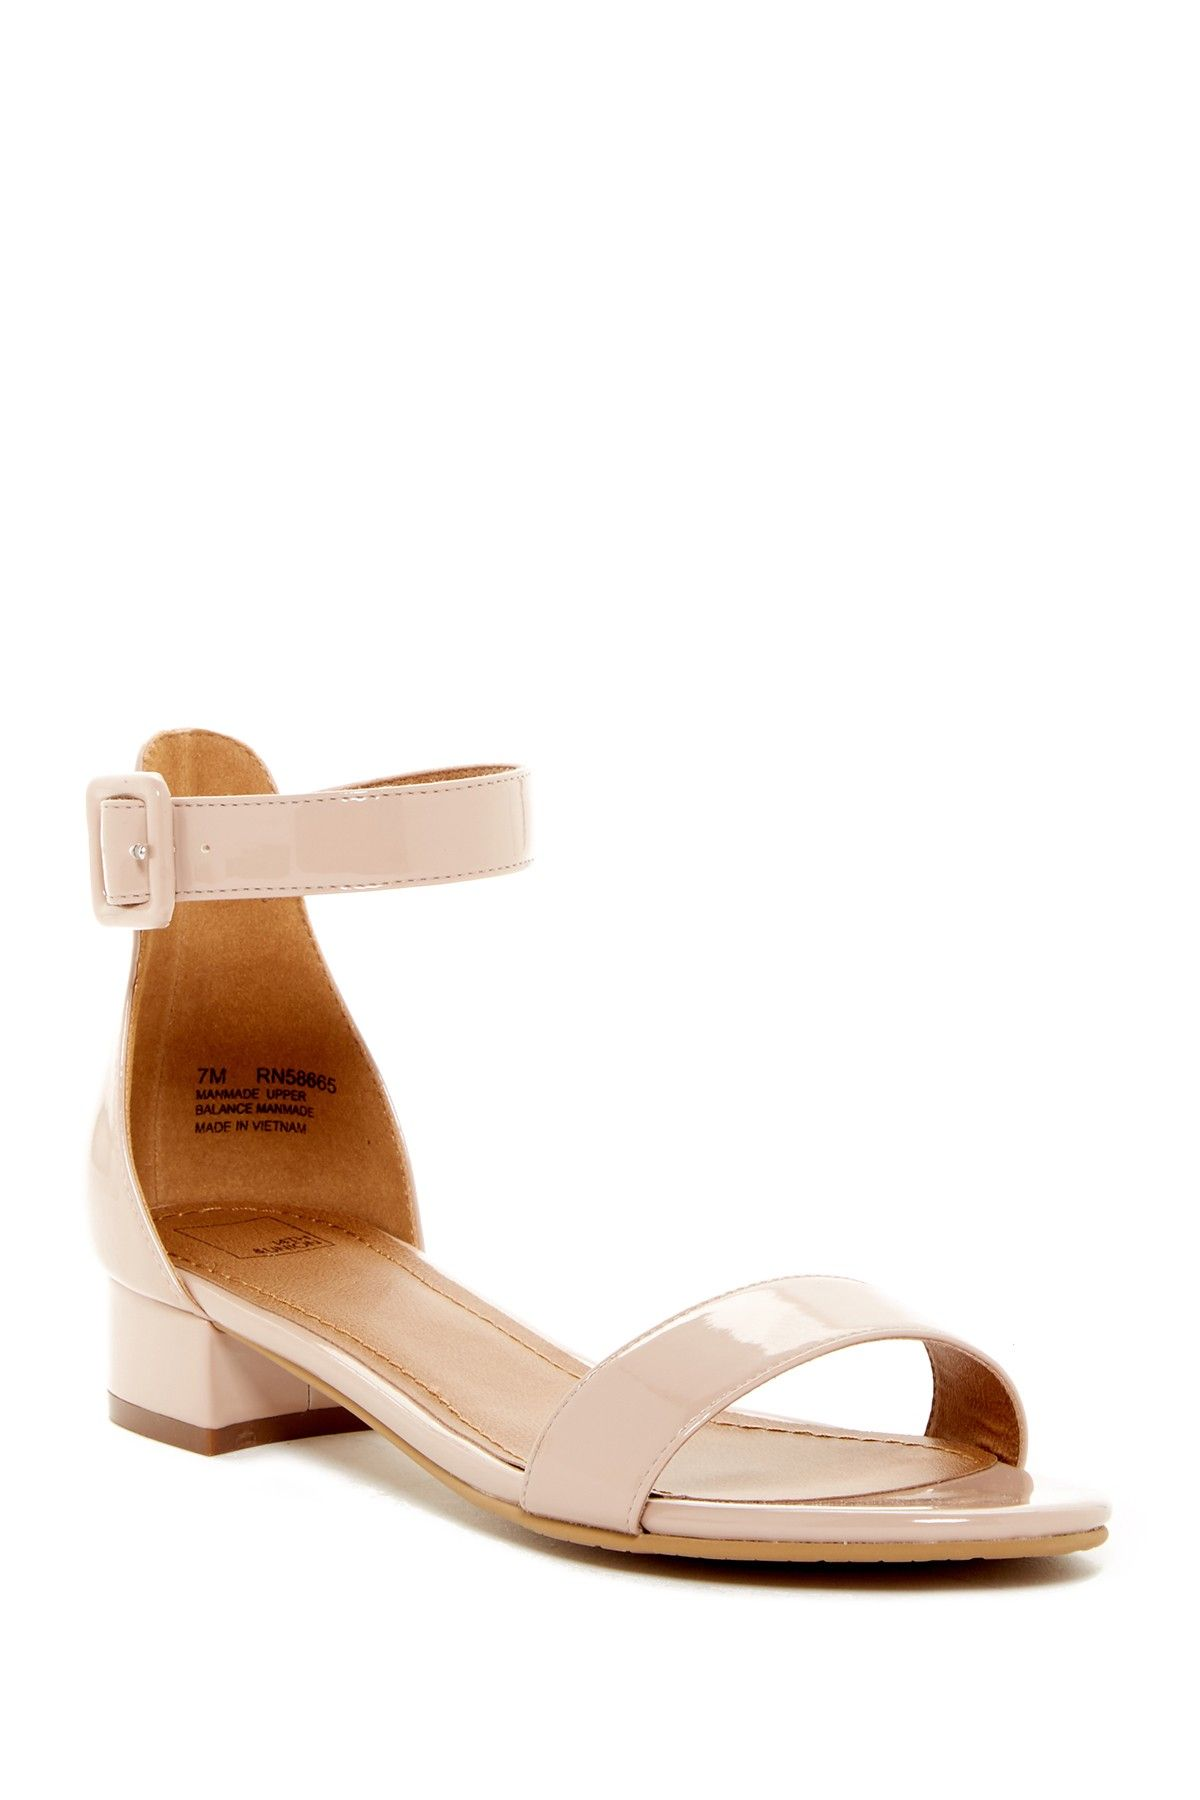 456fa09dee16 Justine Strappy Sandal - Wide Width Available by 14th   Union  39.97 also  in blk